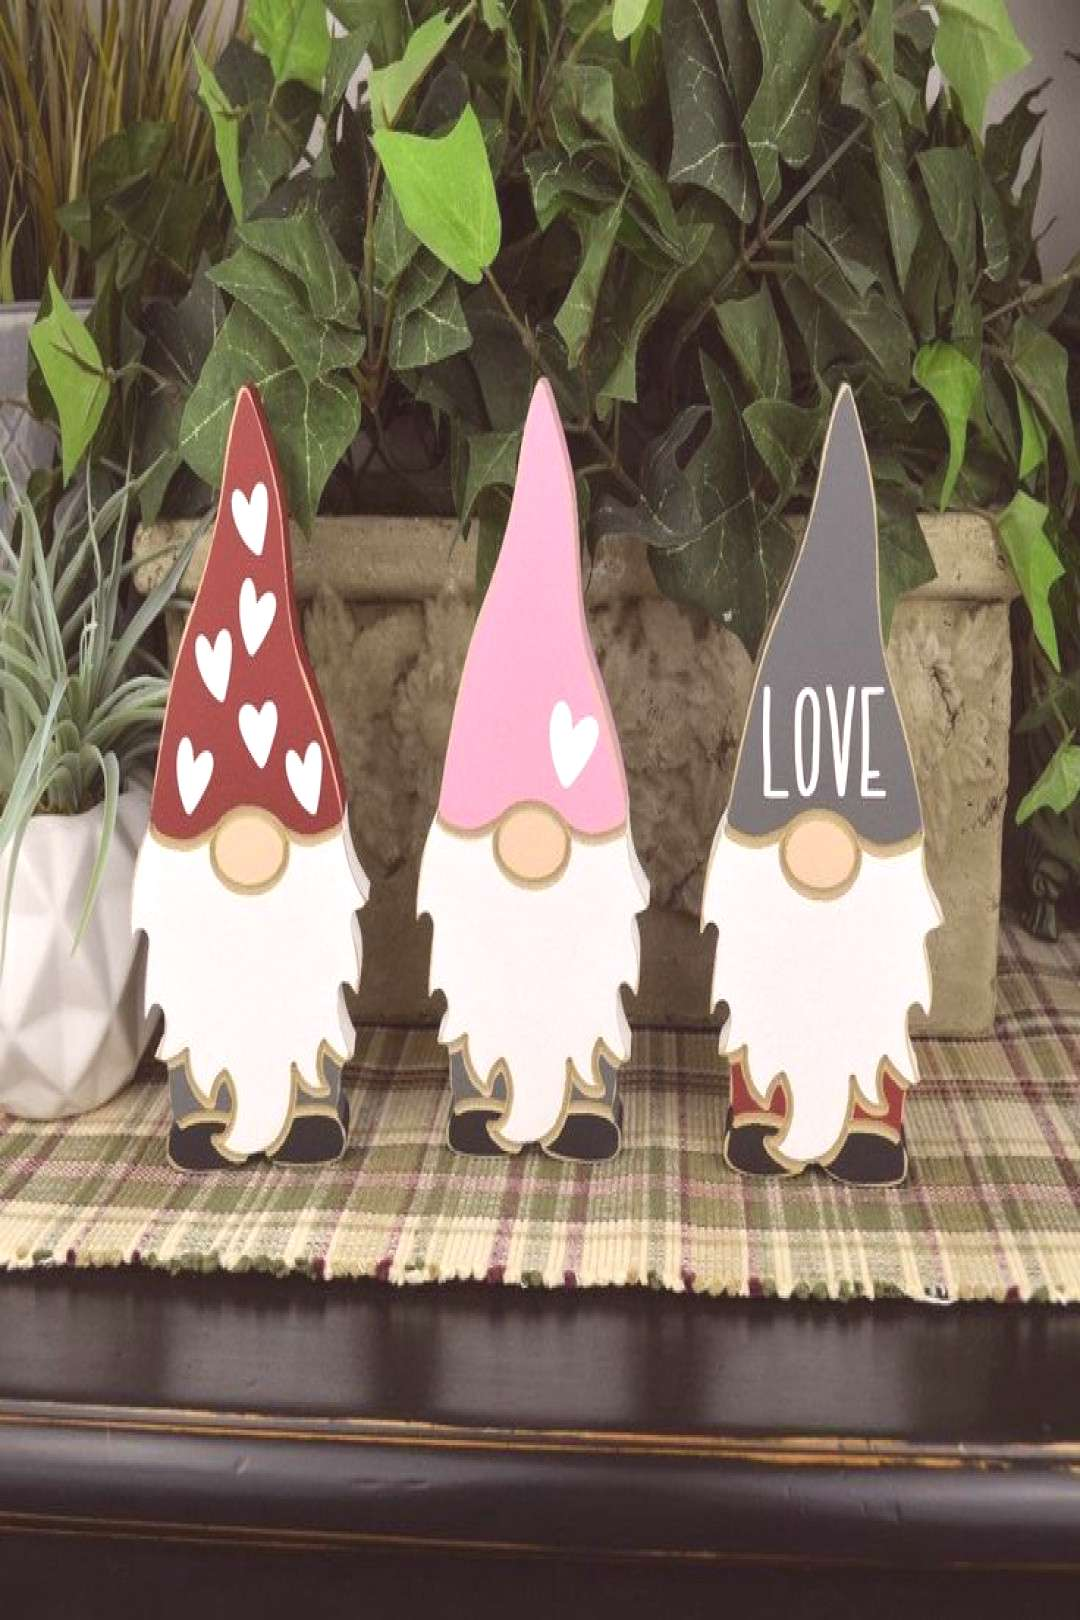 I Love you Gnome matter what!  Valentine's Gnomes are so cute for displaying on a tiered tray or